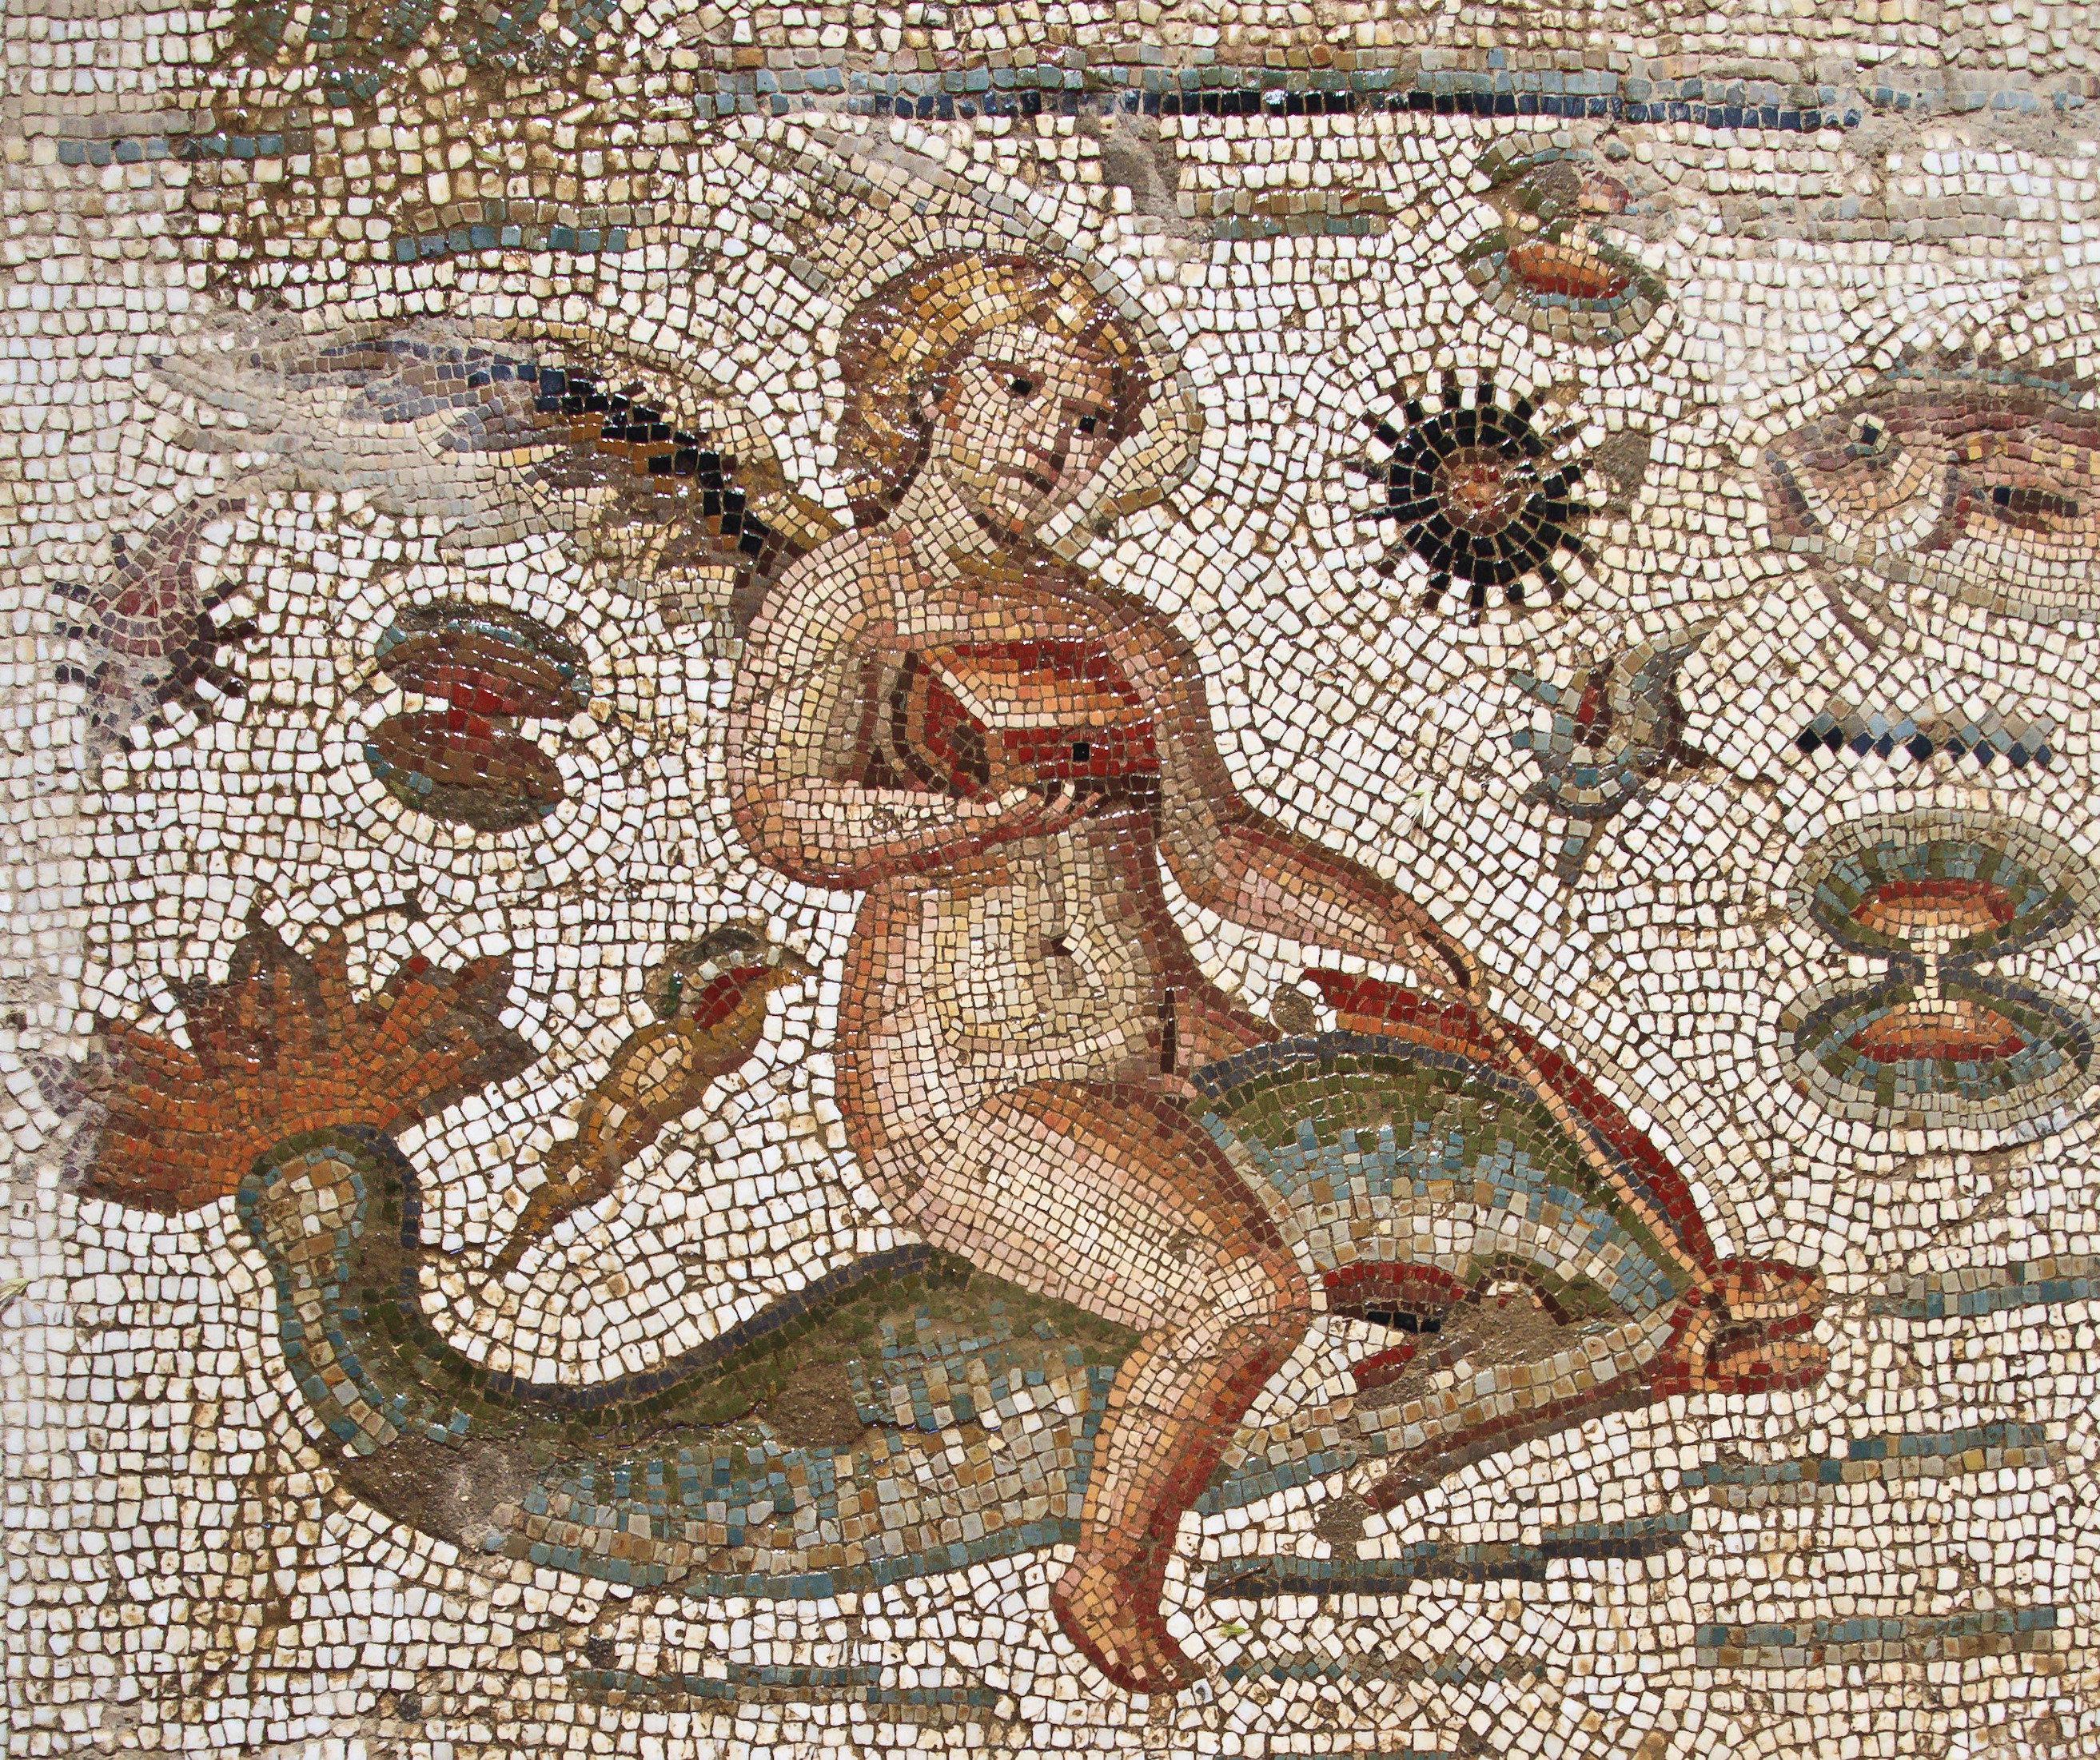 Römisches Mosaik, Tunesien, Angel Riding Dolphin